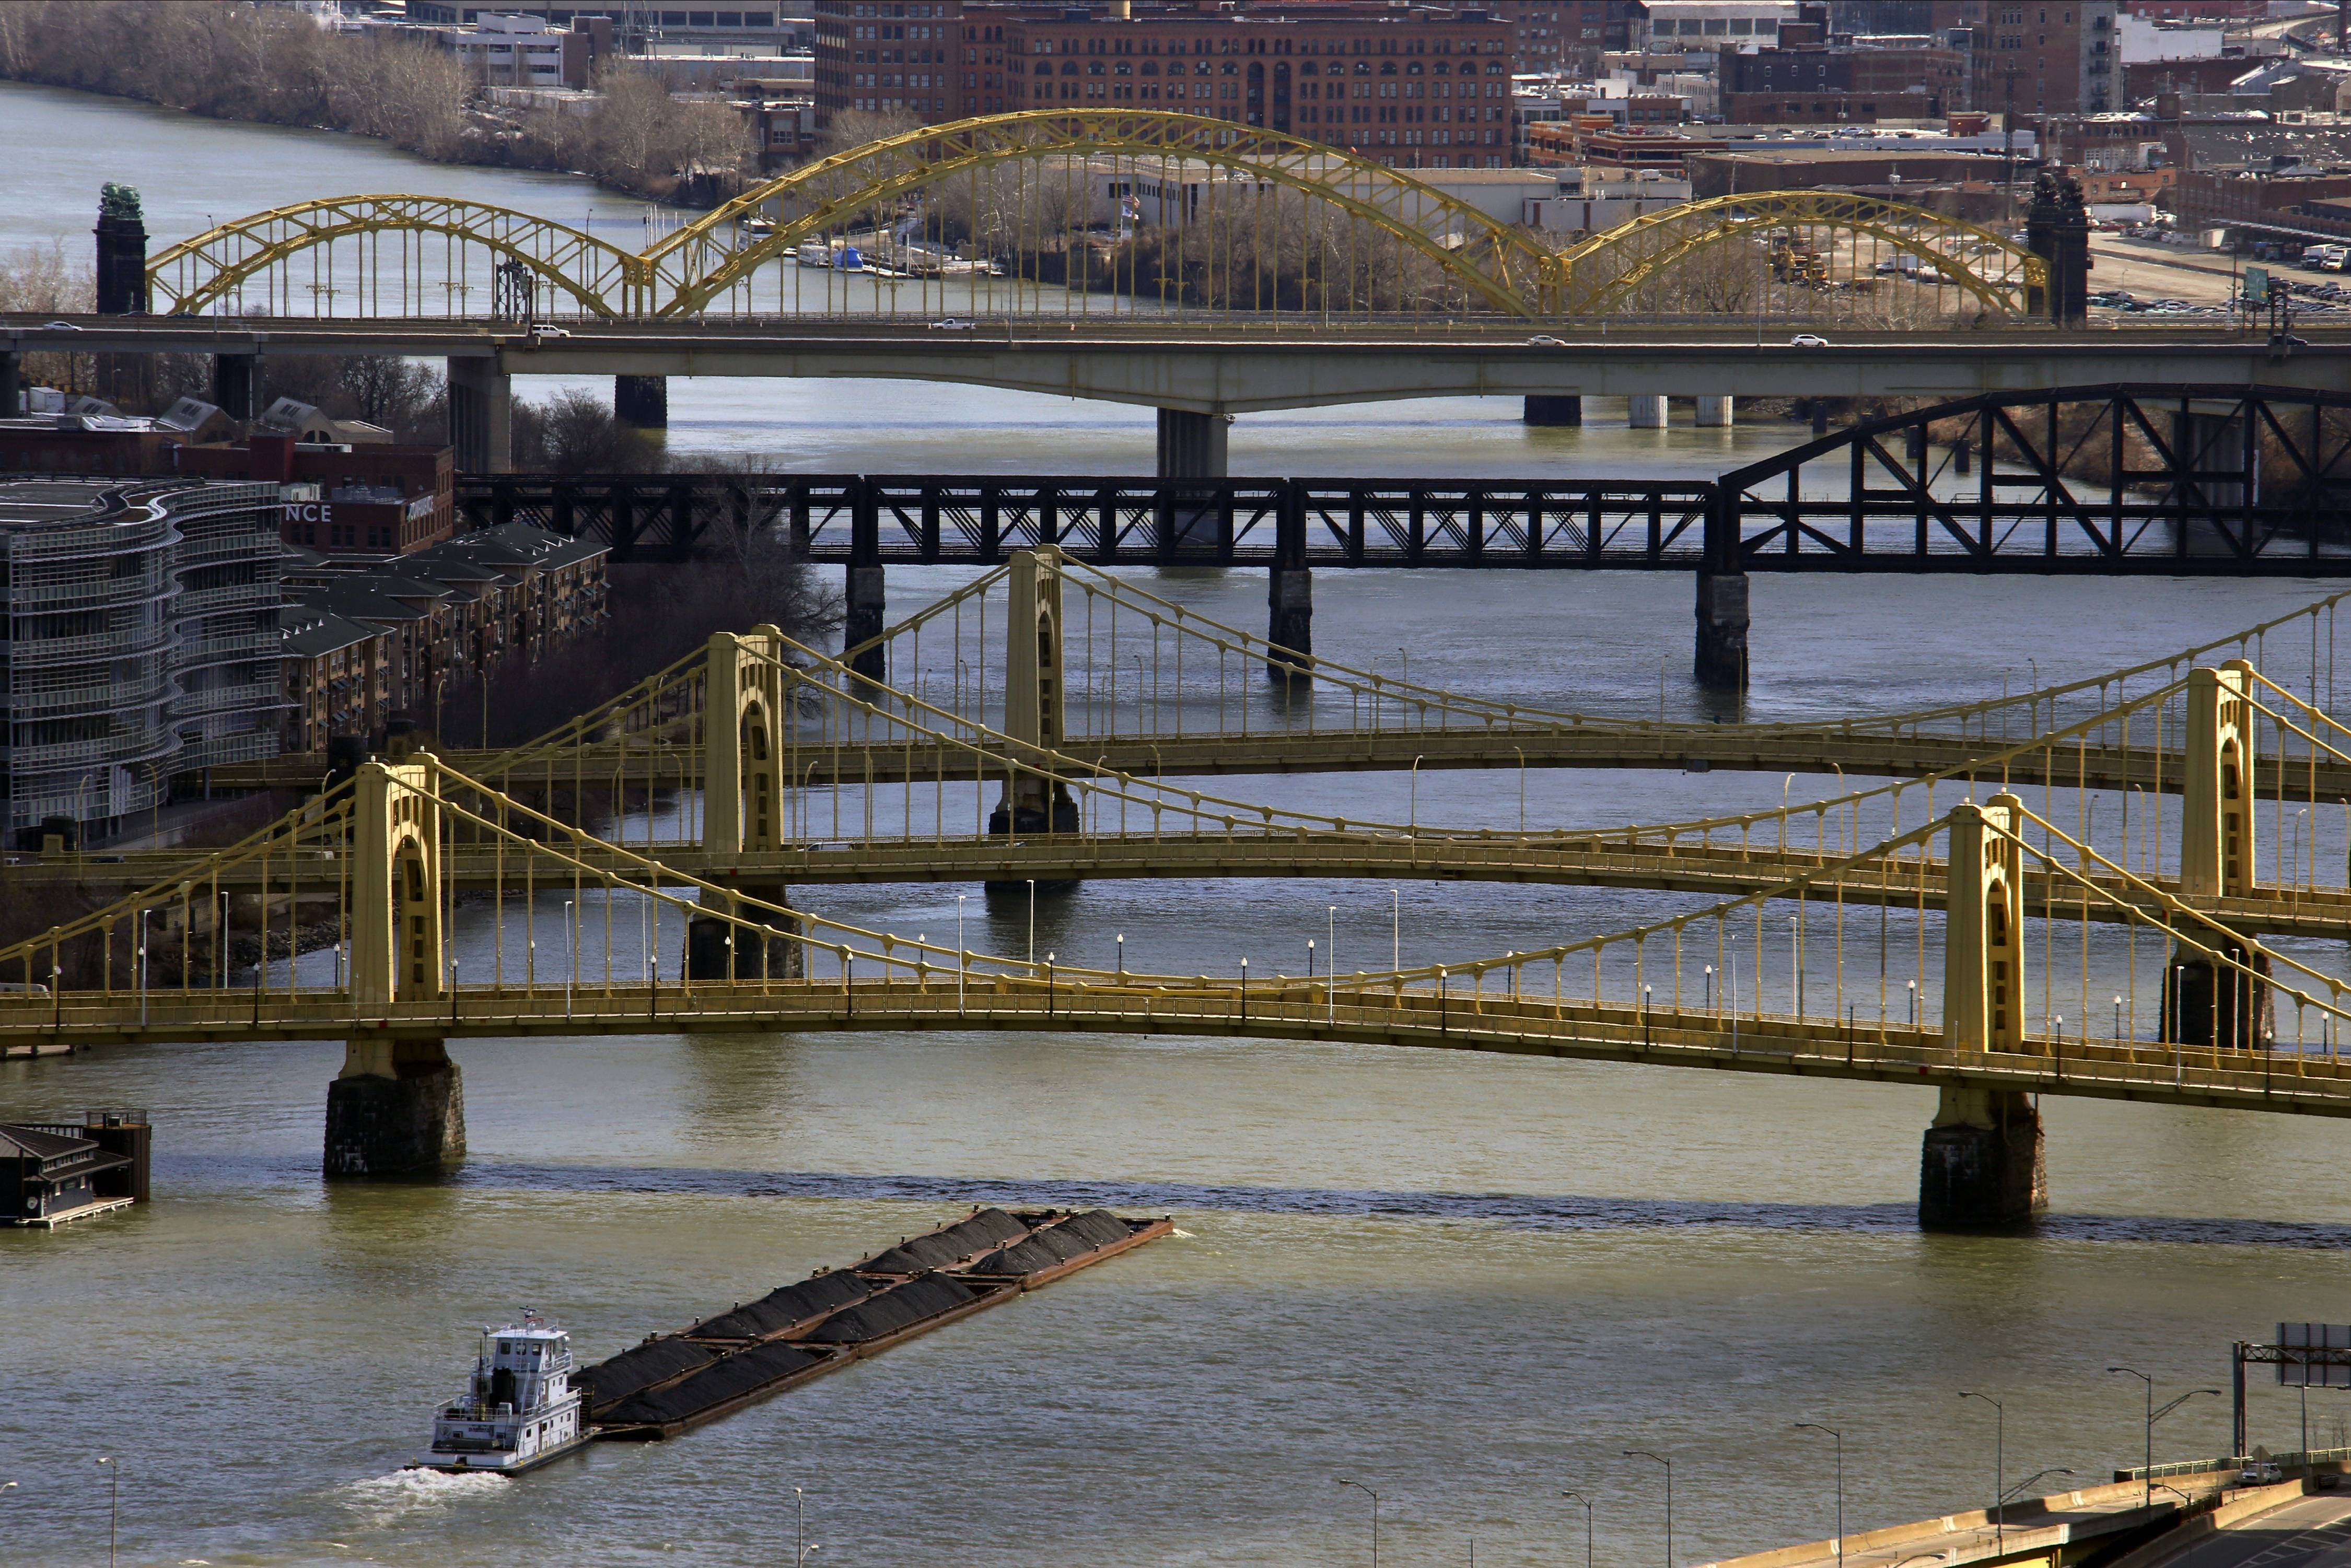 A towboat and barges make their way up the Allegheny River under three historic bridges named after Robert Clemente, foreground, Andy Warhol and Rachel Carson in downtown Pittsburgh.